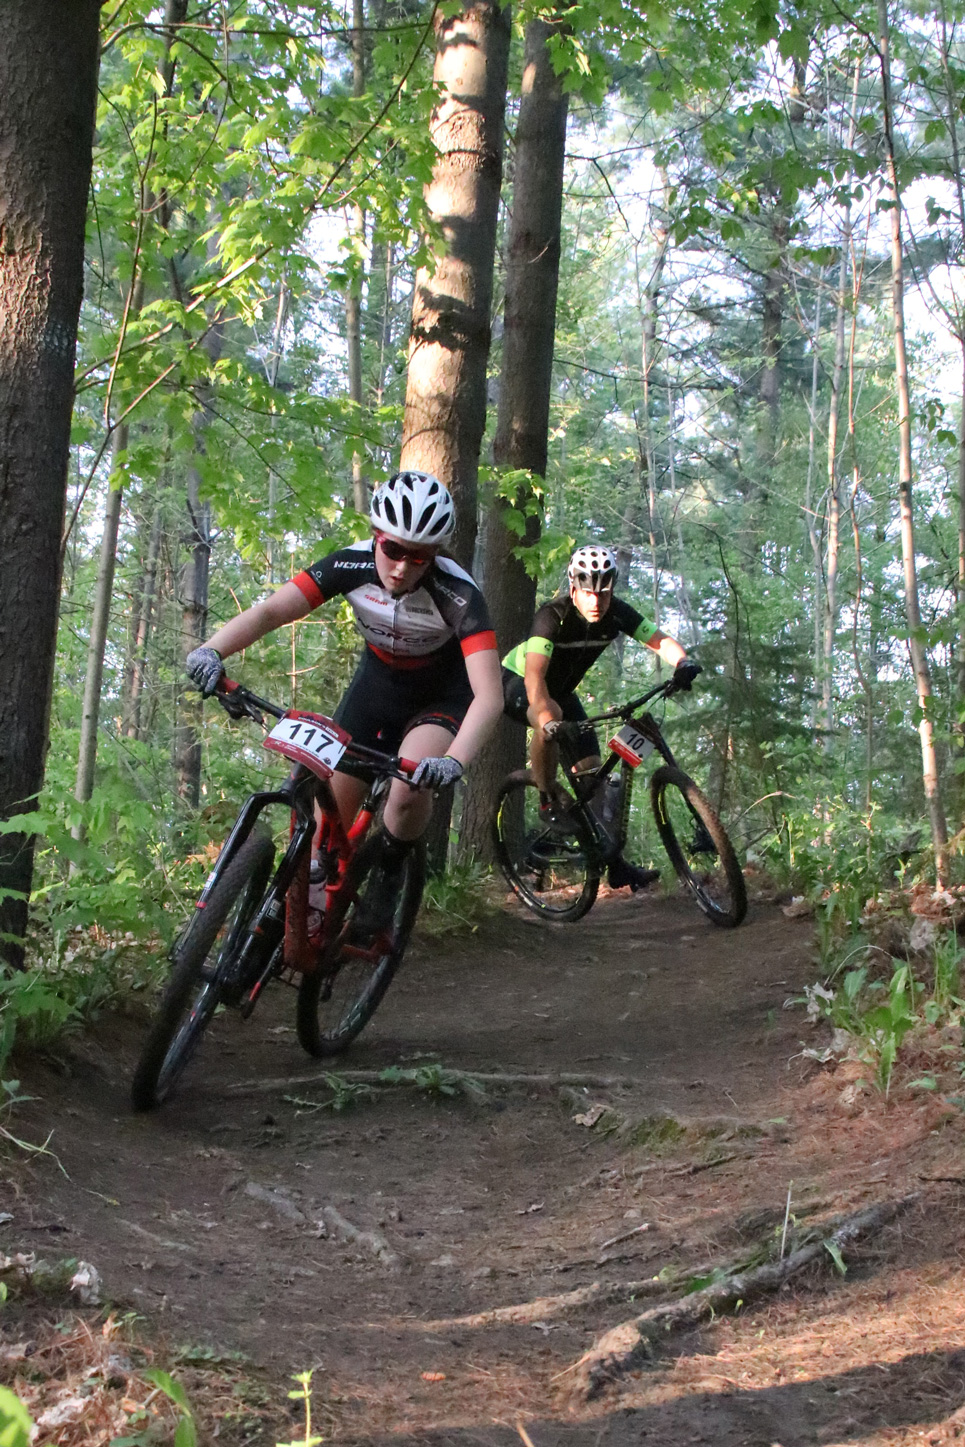 Carys Reid and Paul Boken rip through some immaculately groomed singletrack. Pursuing.